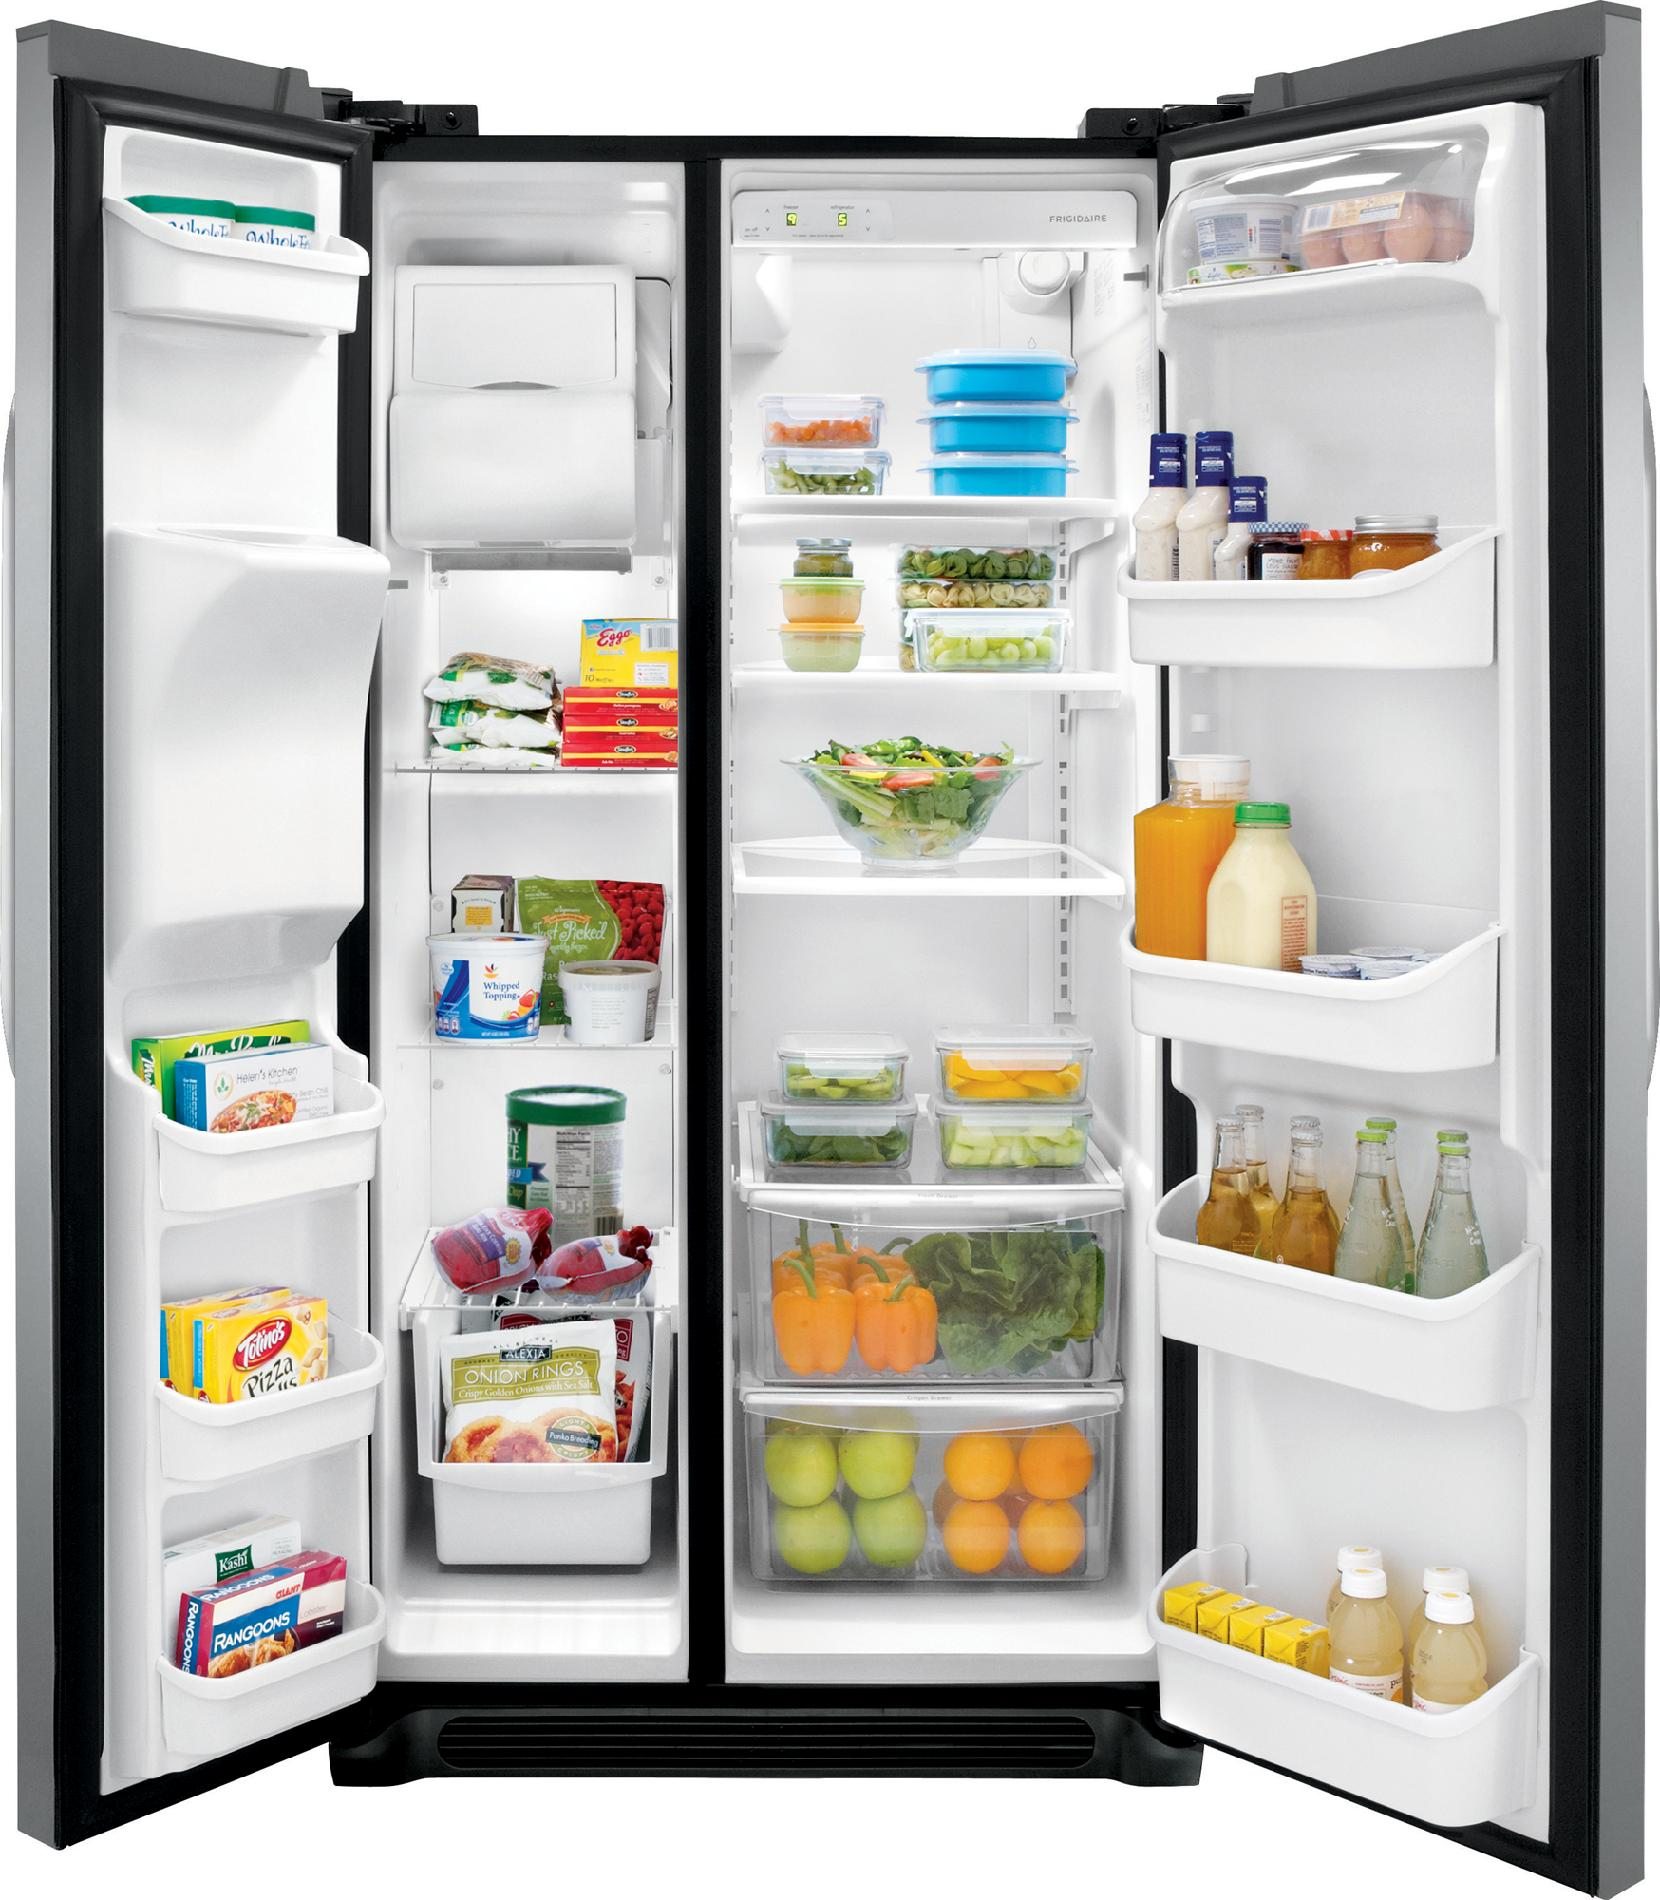 Frigidaire 22.6 cu. ft. Side-by-Side Refrigerator - Stainless Steel